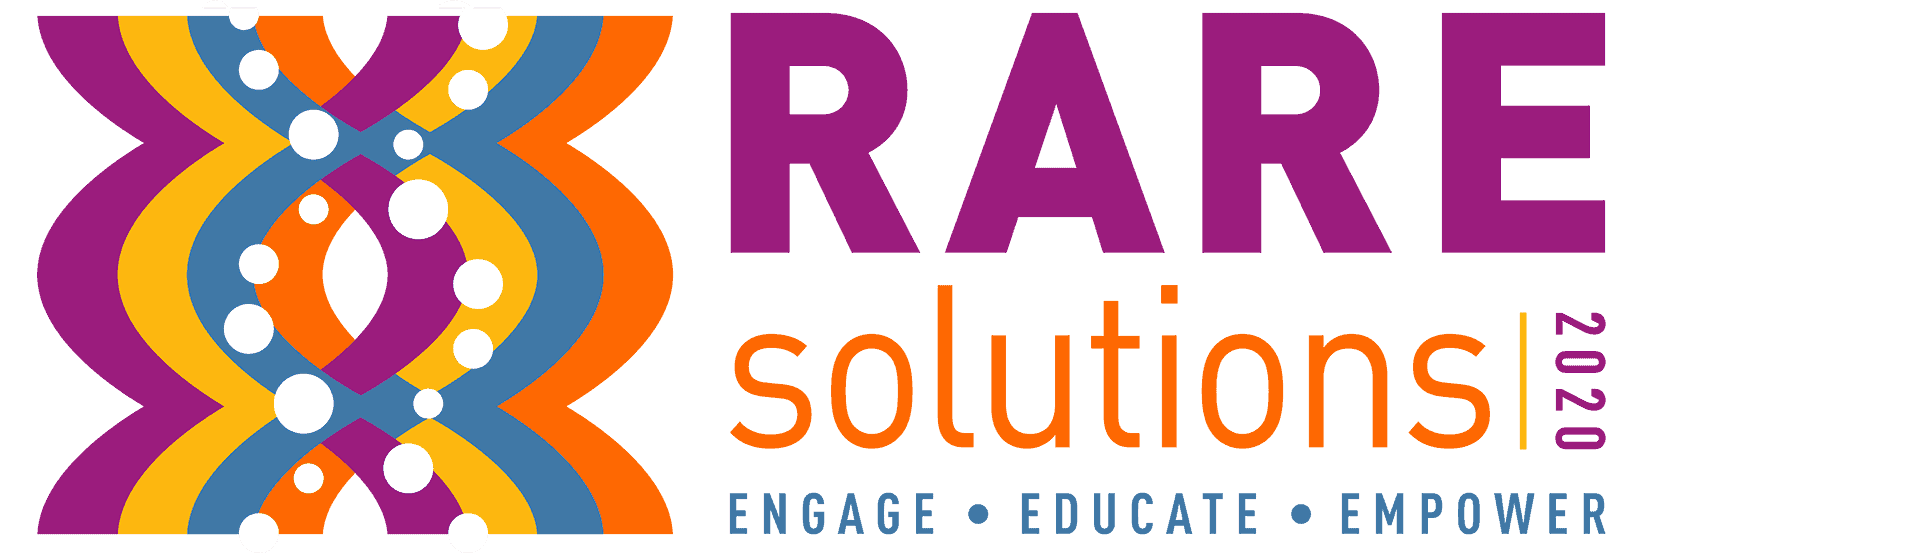 RAREsolutions20 poster design competition logo